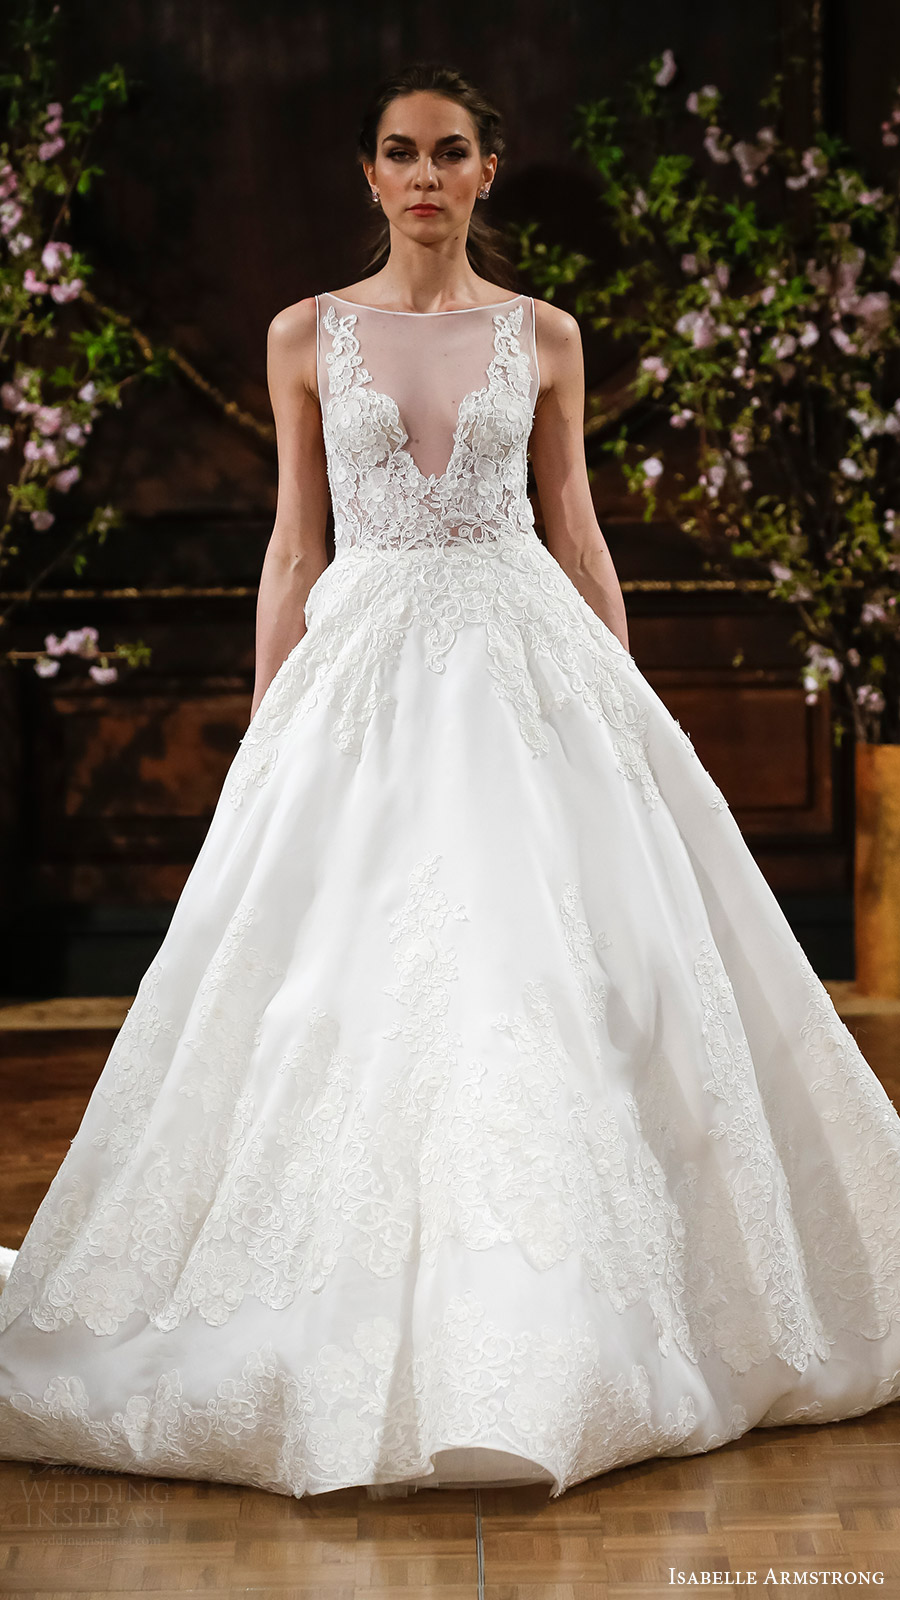 isabelle armstrong bridal spring 2017 sleeveless illusion bateau neck ball gown wedding dress (robyn) mv romantic